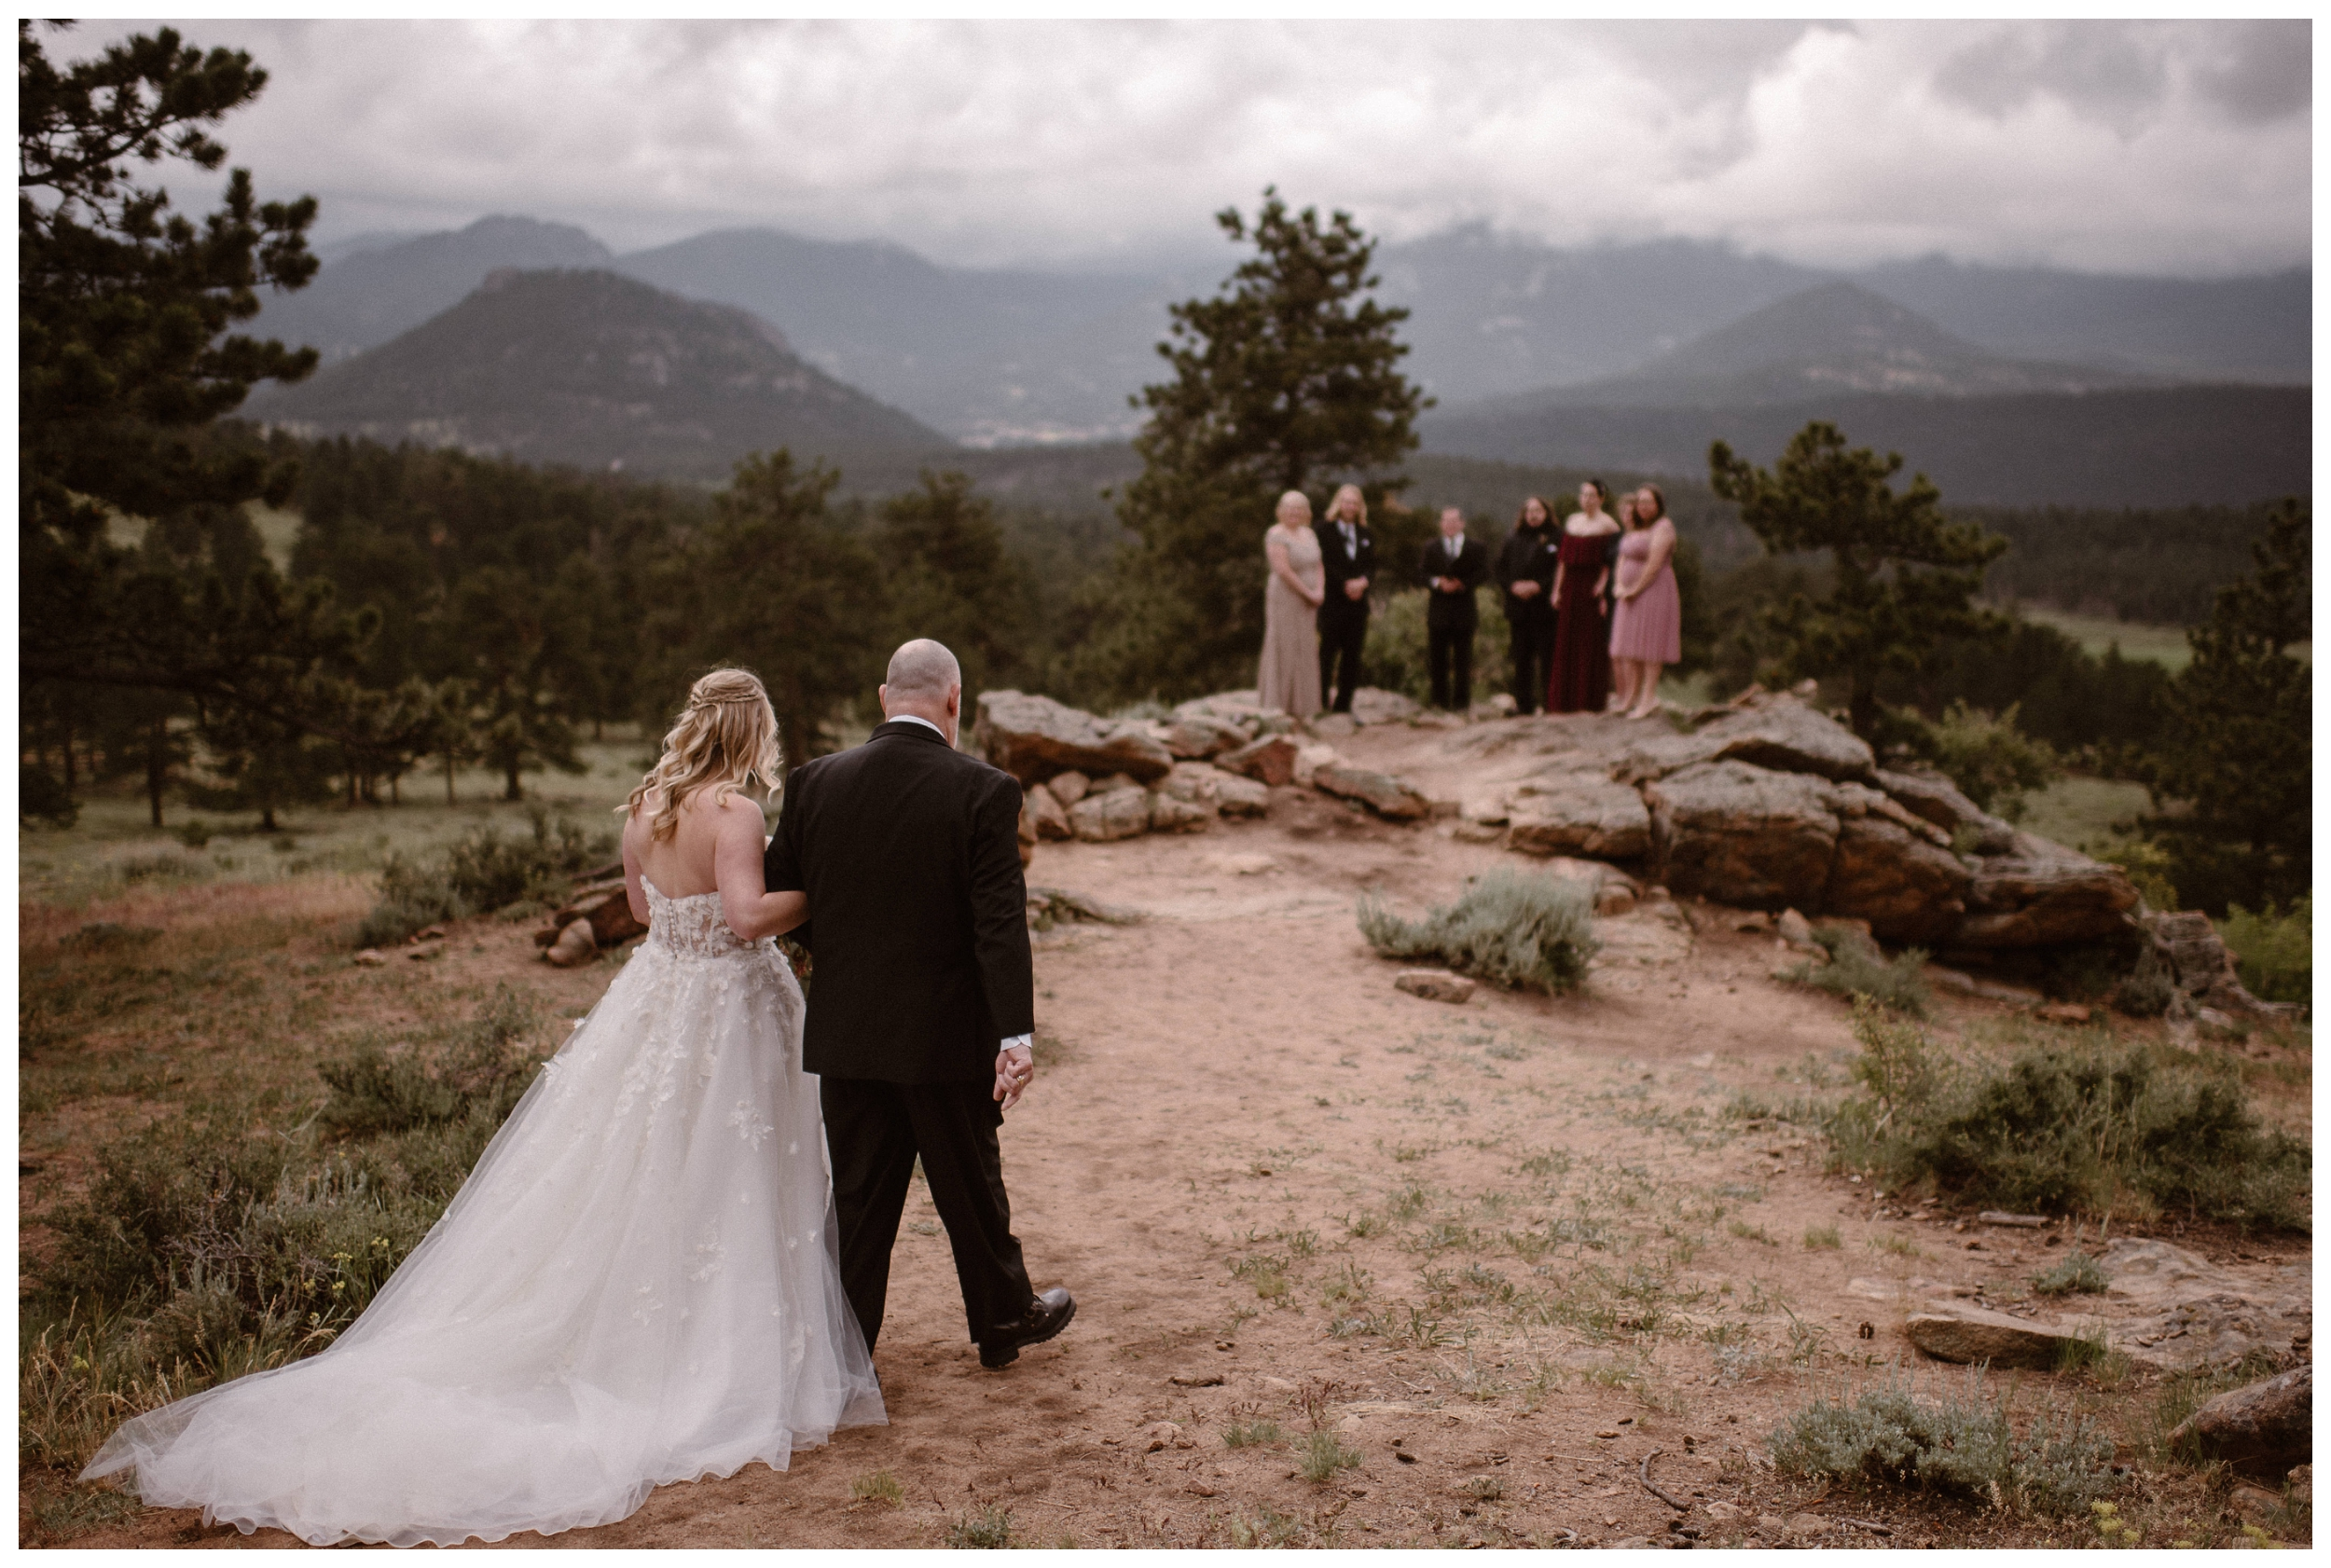 Alicia walks down the aisle towards close family and friends for her intimate elopement ceremony inside Rocky Mountain National Park in Estes Park, Colorado. Photo by Adventure Instead, Maddie Mae.